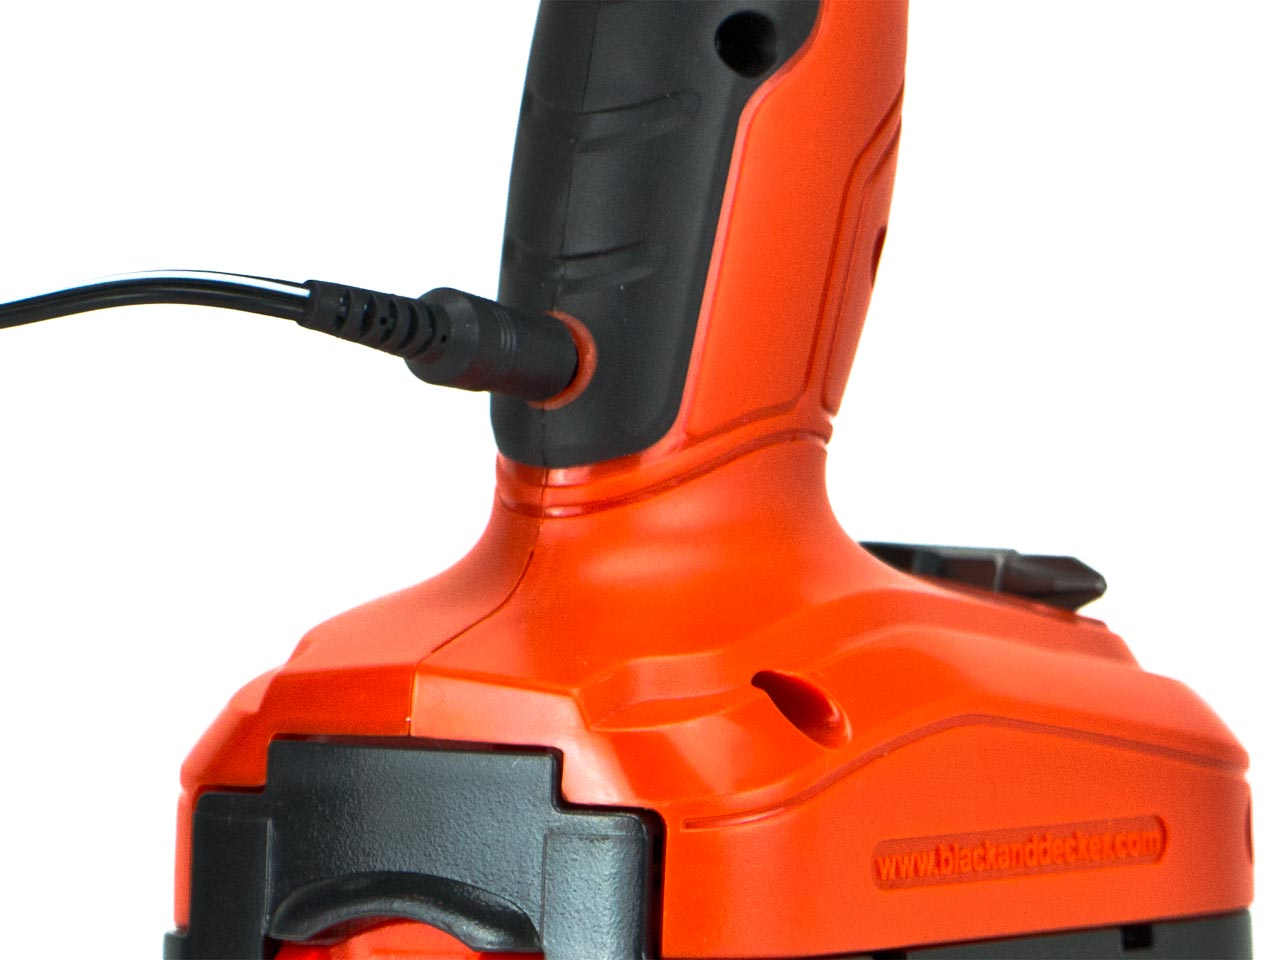 The Black & Decker Corporation (A): Power Tools Division